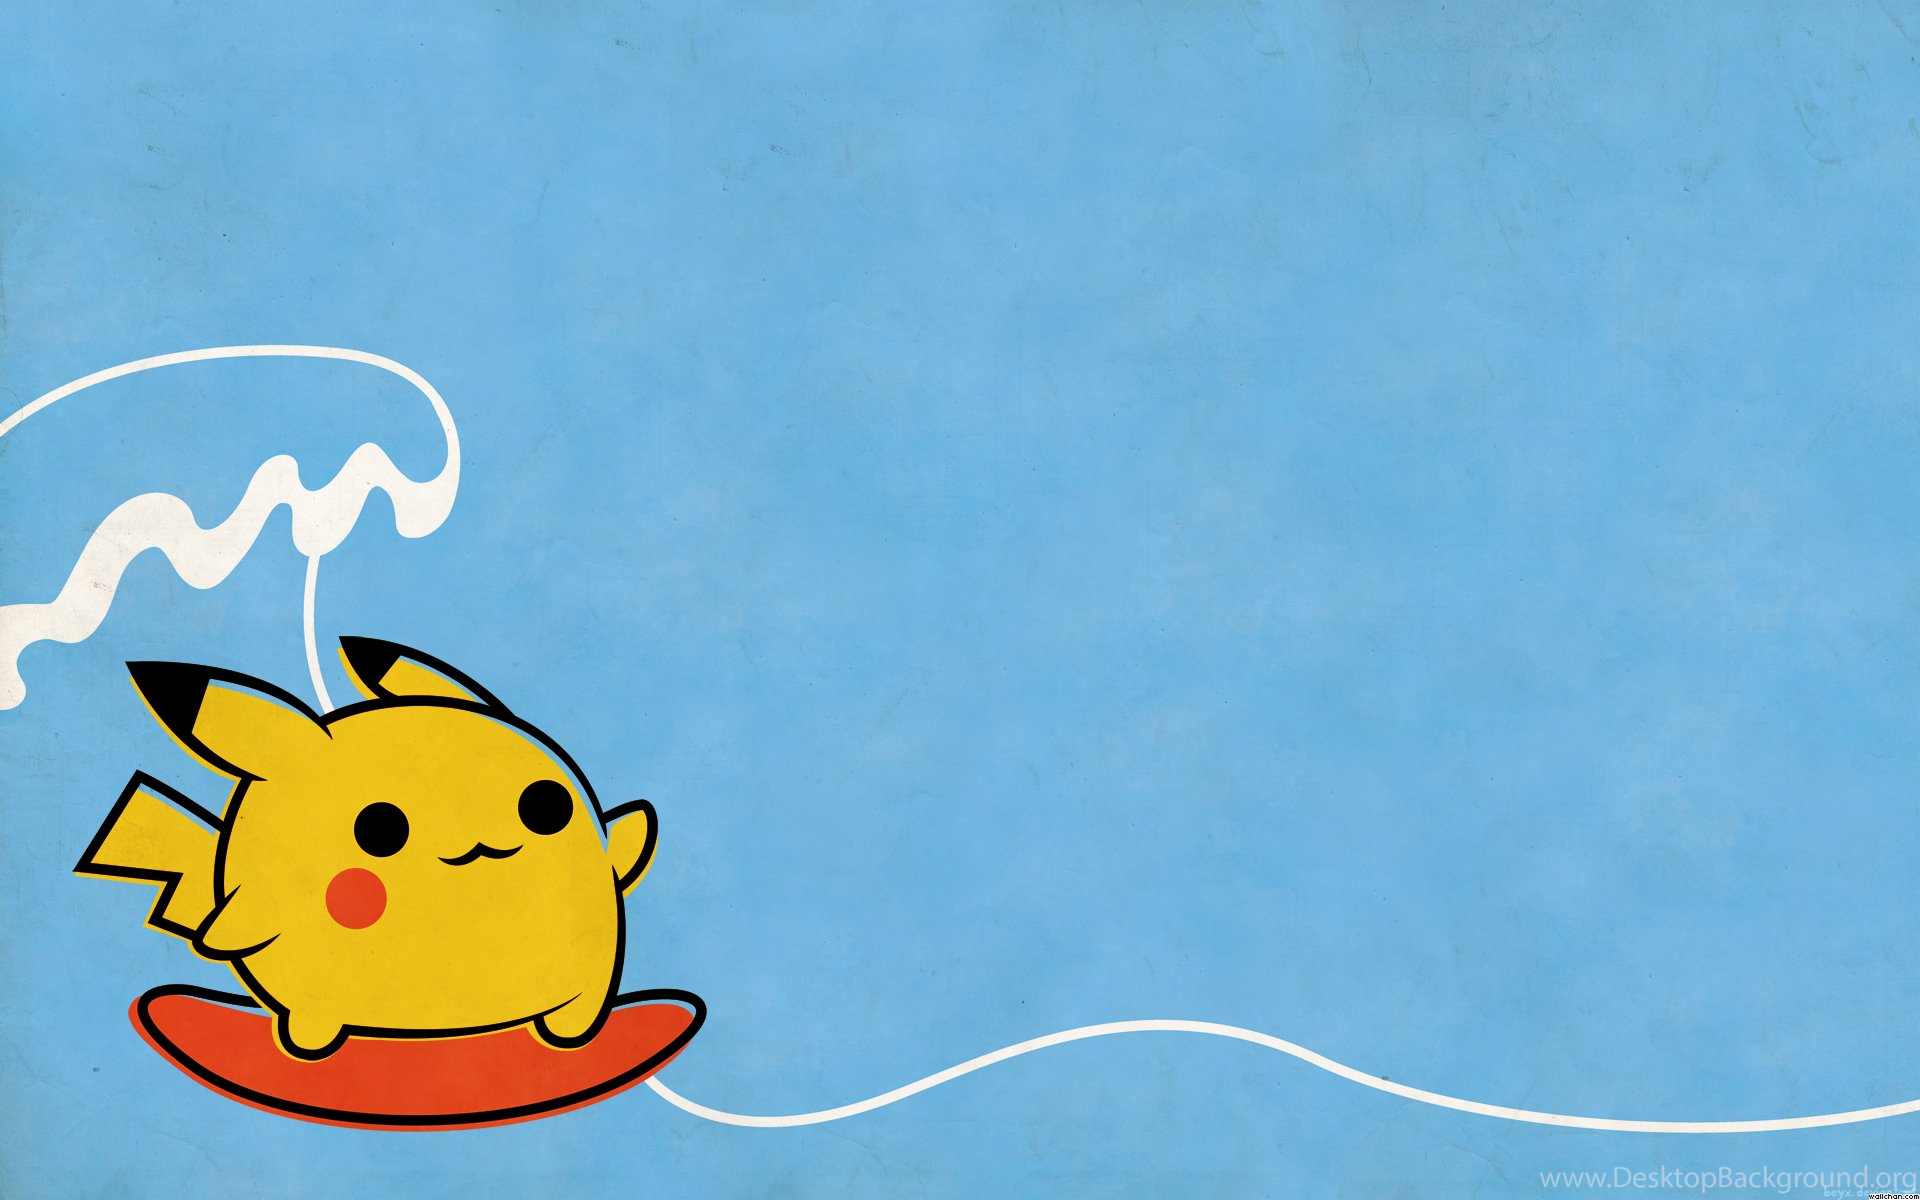 Cute Little Pokemon For Computer Wallpapers Desktop Background